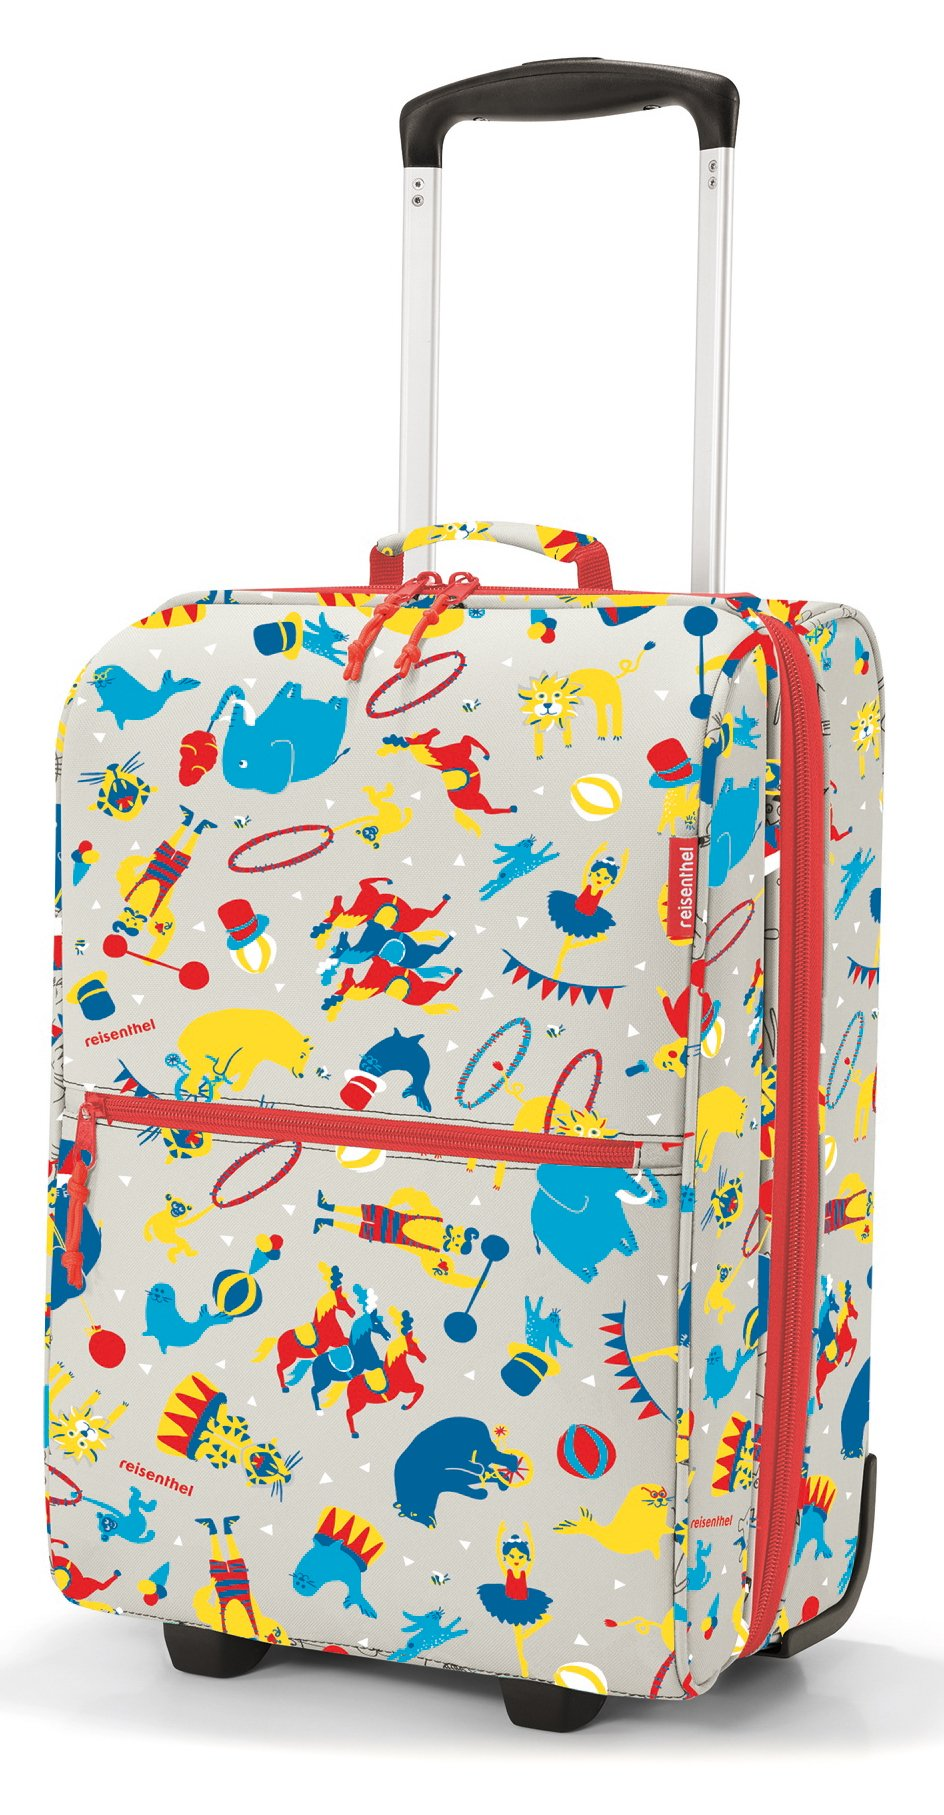 reisenthel Trolley XS Kids Luggage, Lightweight Compact Roller Bag, Circus Red